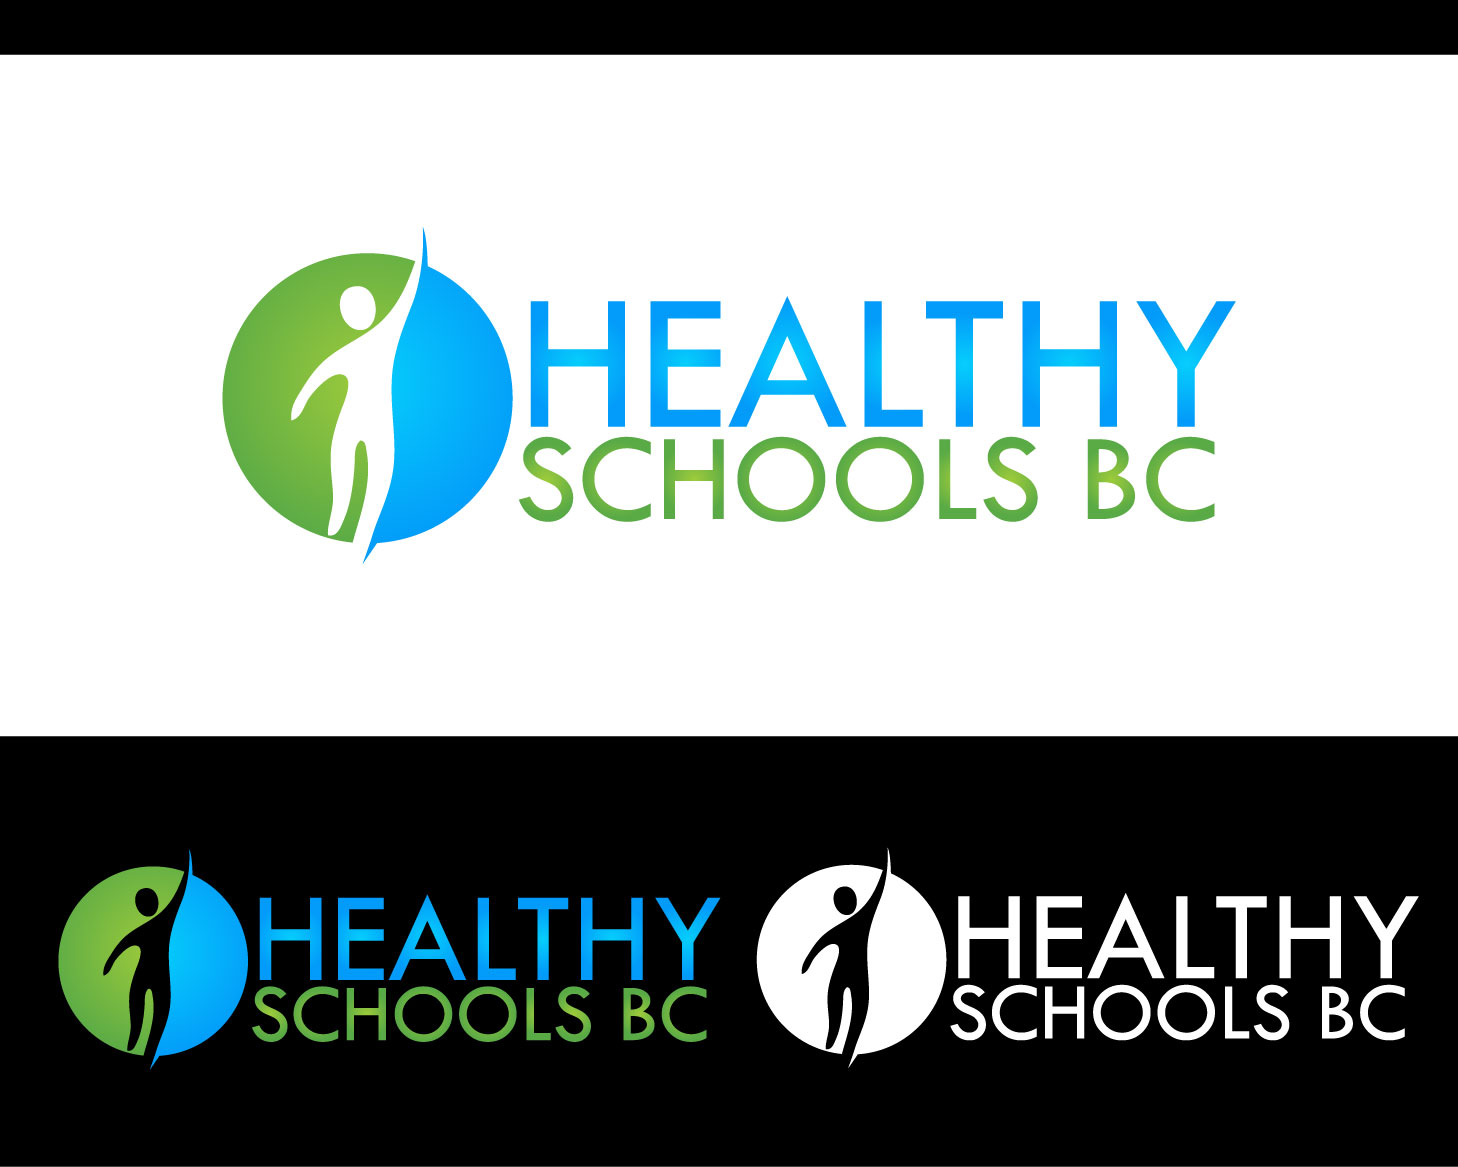 Logo Design by Private User - Entry No. 422 in the Logo Design Contest SImple, Creative and Clean Logo Design for Healthy Schools British Columbia, Canada.